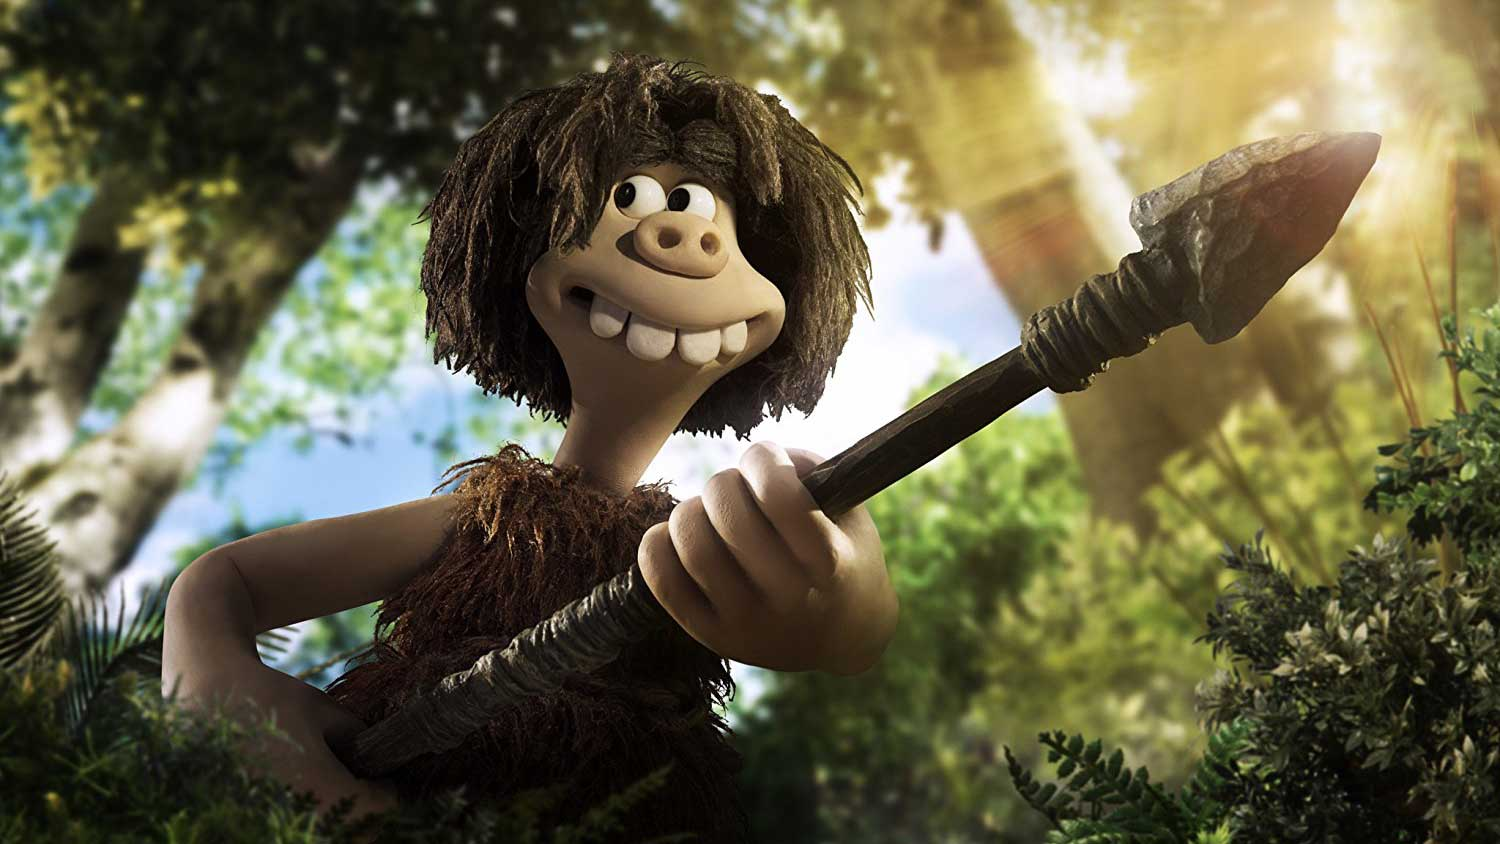 Early Man Review – Parks And Plasticine - OC Movie Reviews - Movie Reviews, Movie News, Documentary Reviews, Short Films, Short Film Reviews, Trailers, Movie Trailers, Interviews, film reviews, film news, hollywood, indie films, documentaries